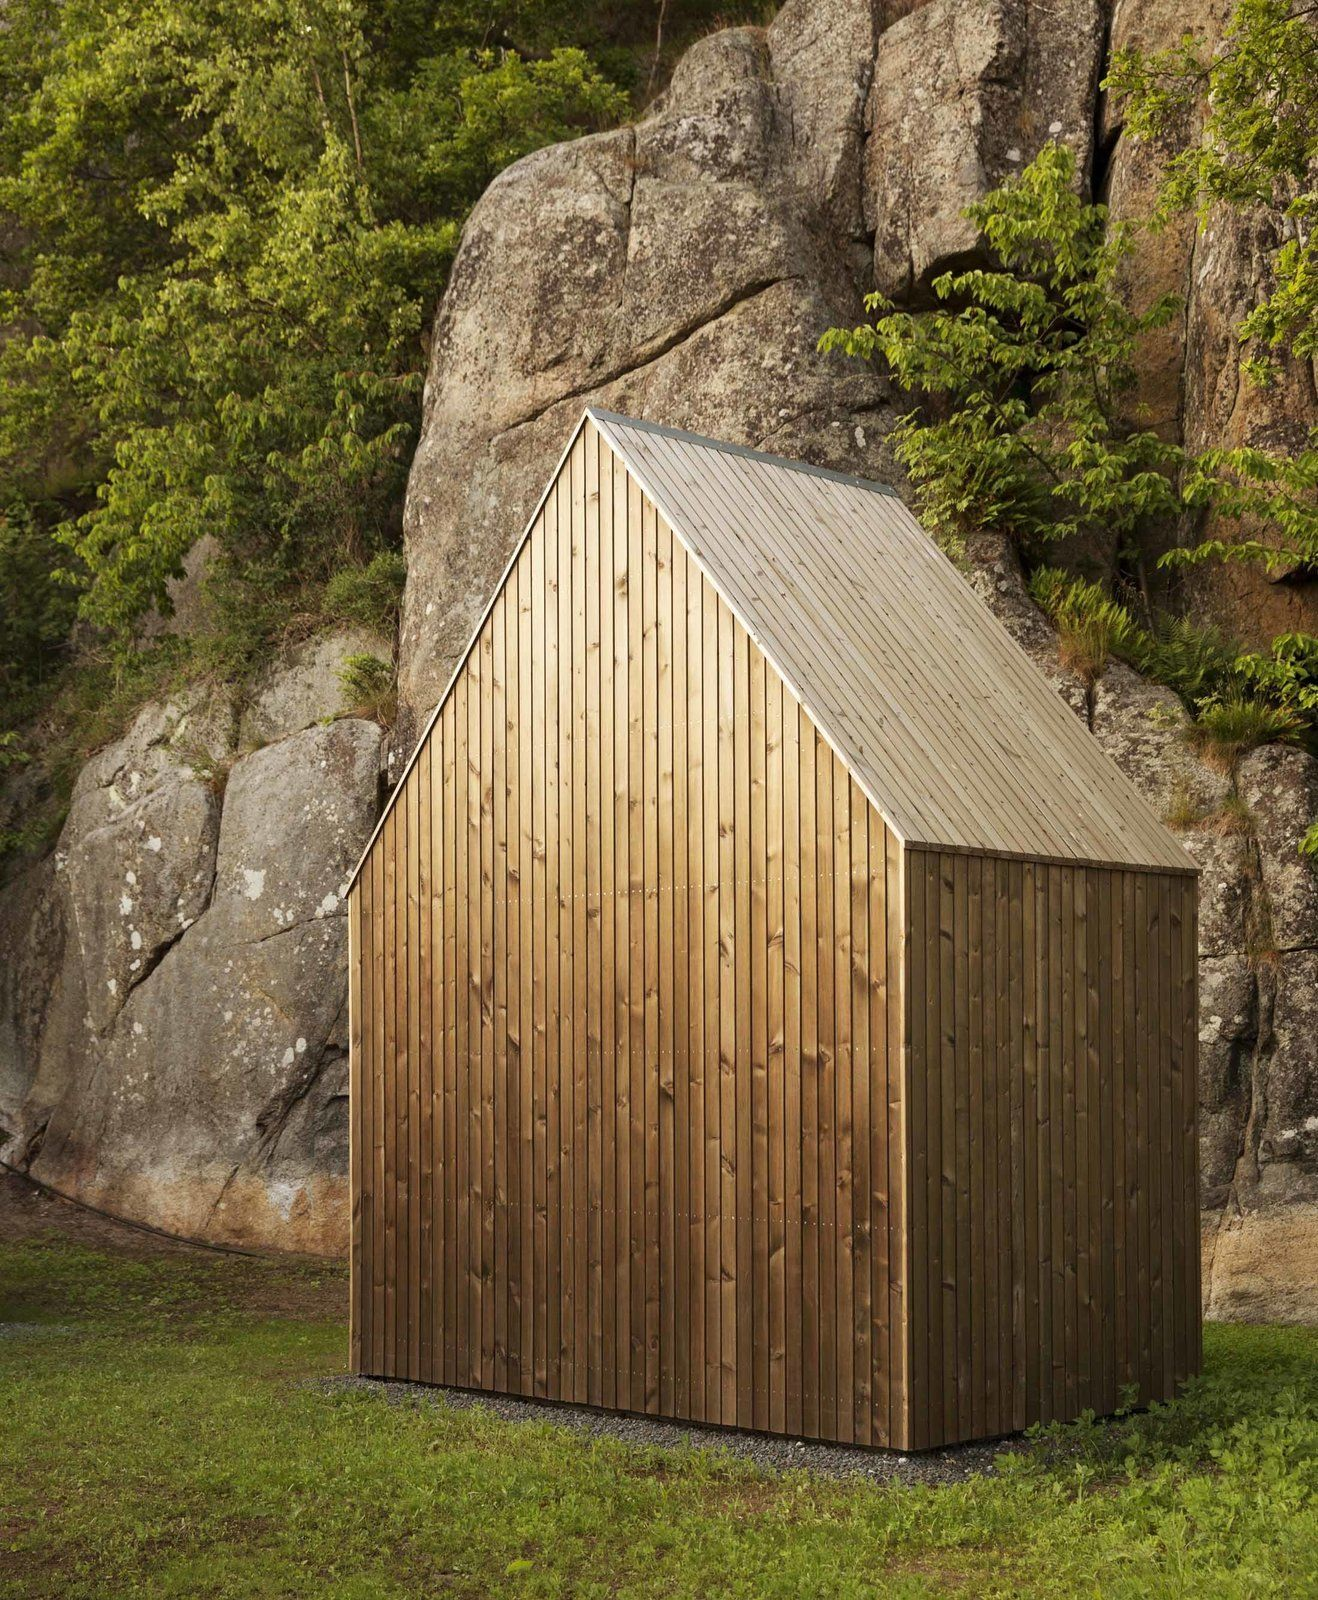 11 Extraordinary Designs That Make You Rethink the Modern Shed | Cabine en bois, Petite maison a ...